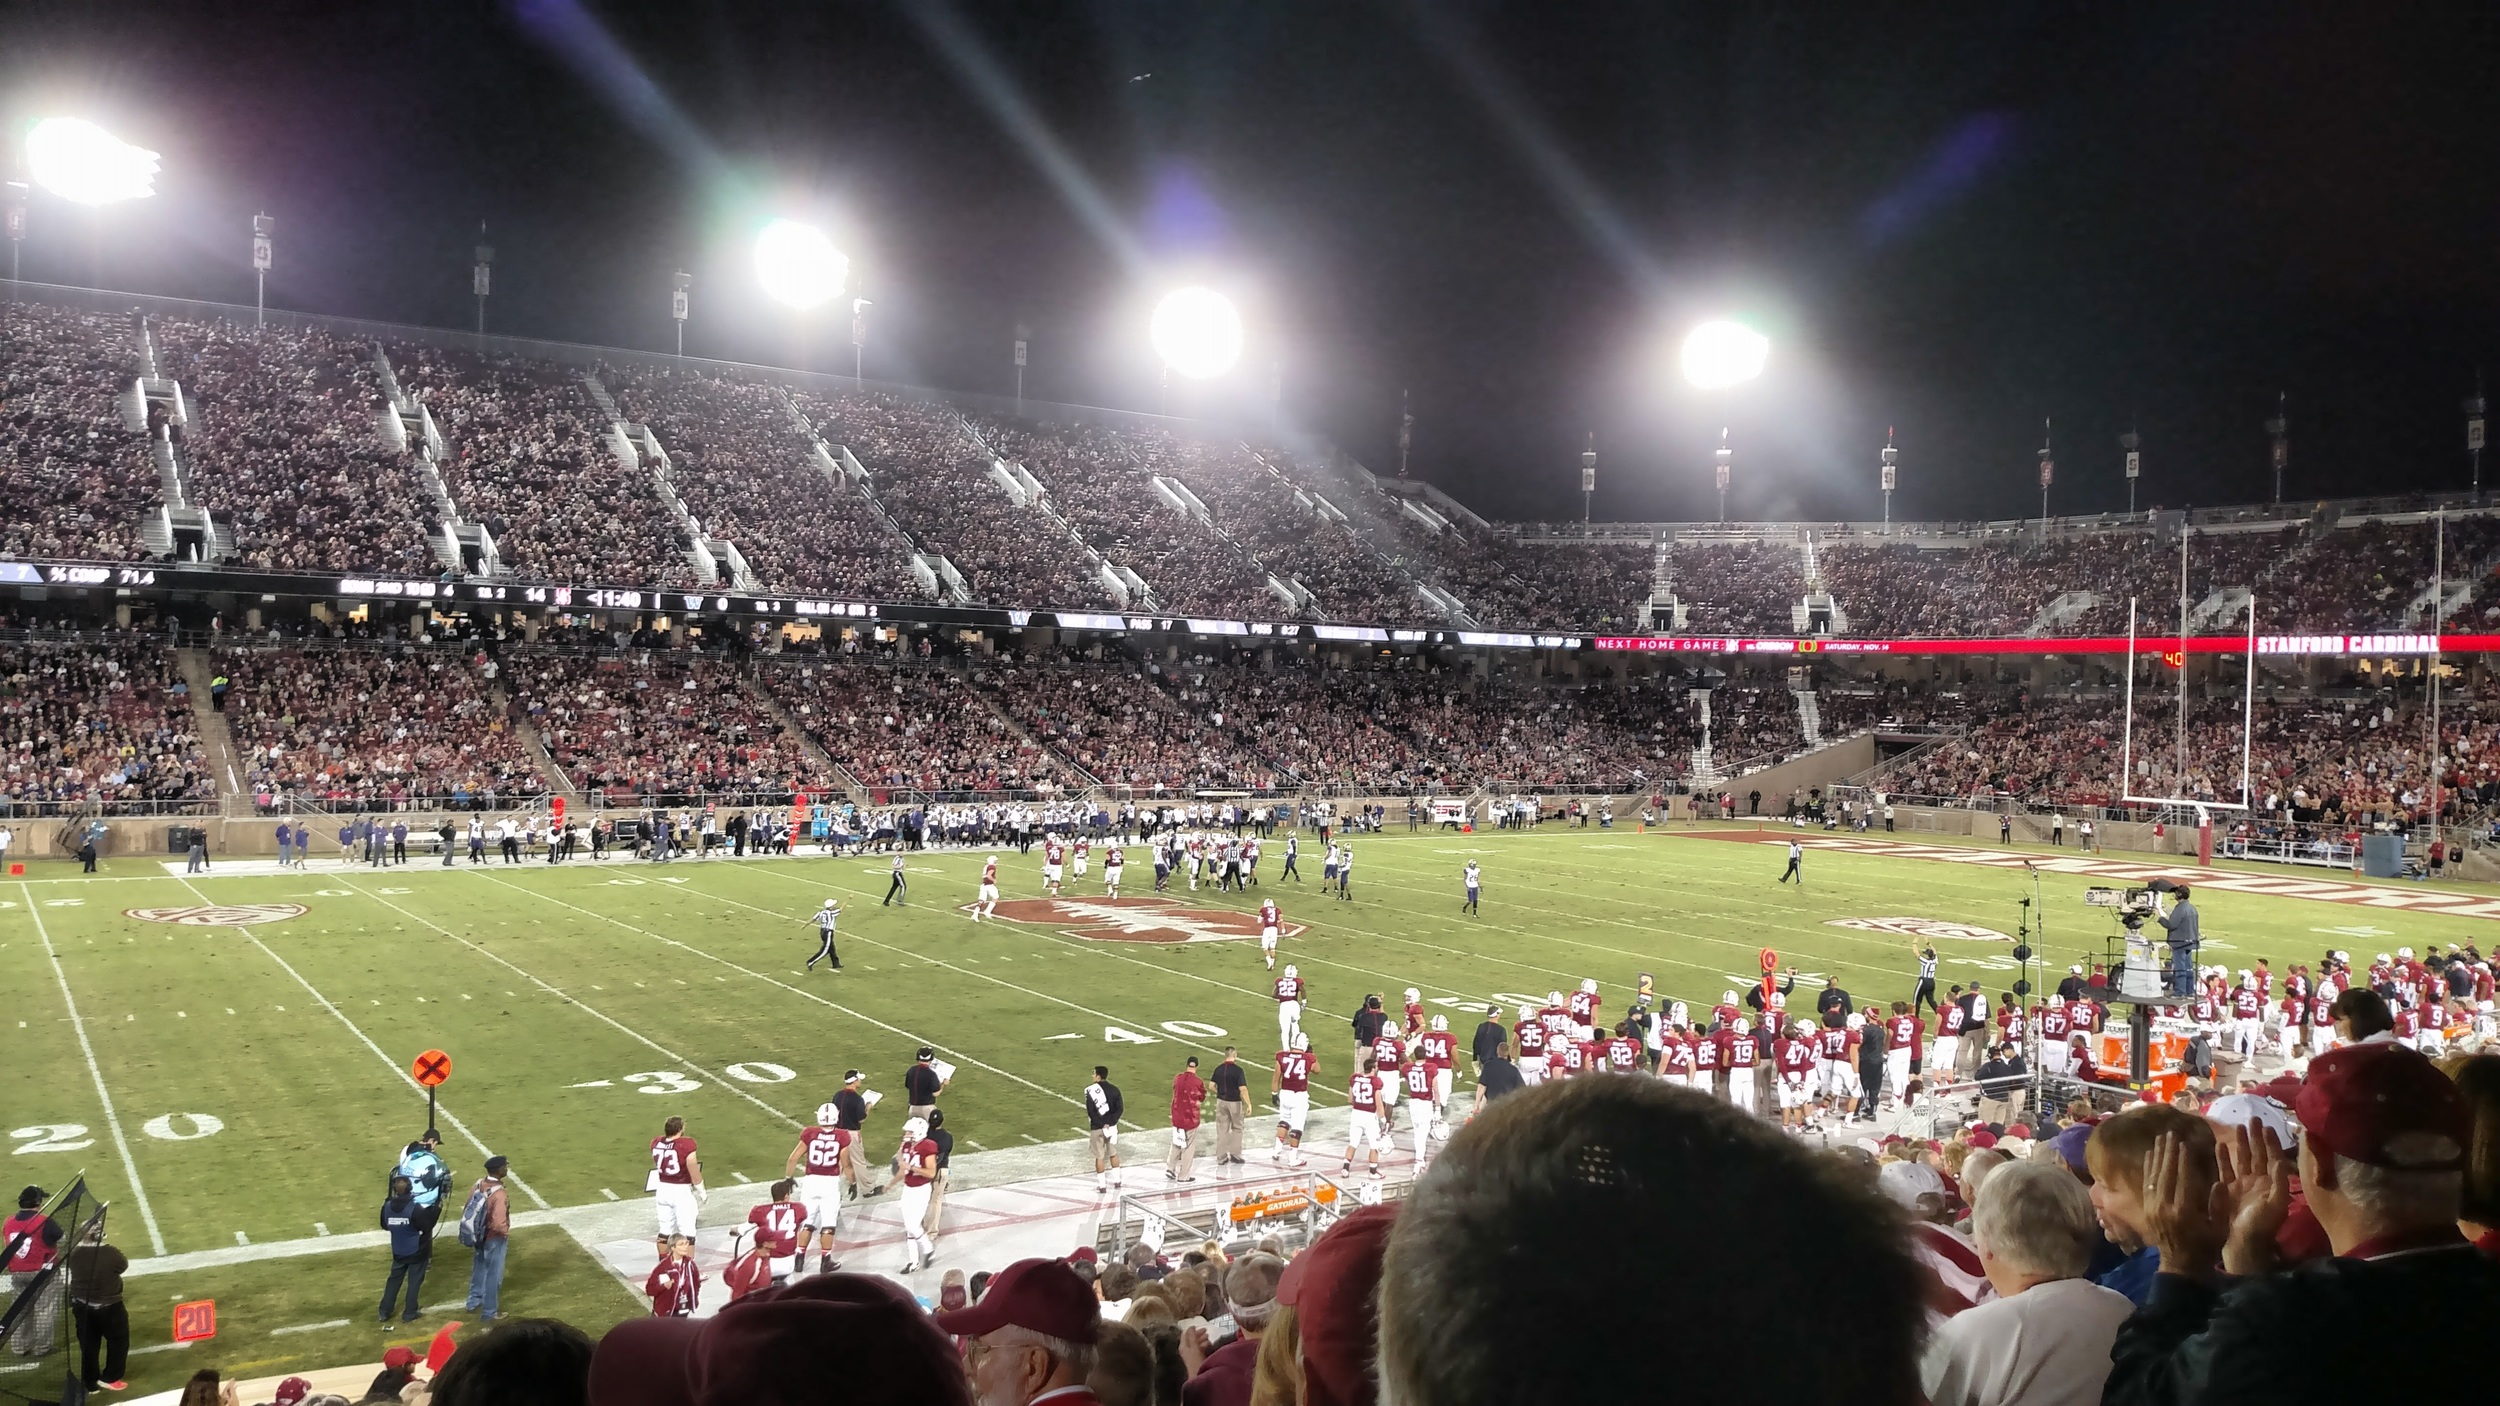 Enjoyed the Stanford Homecoming game vs Washington. 1st college football game since fall of 2010.